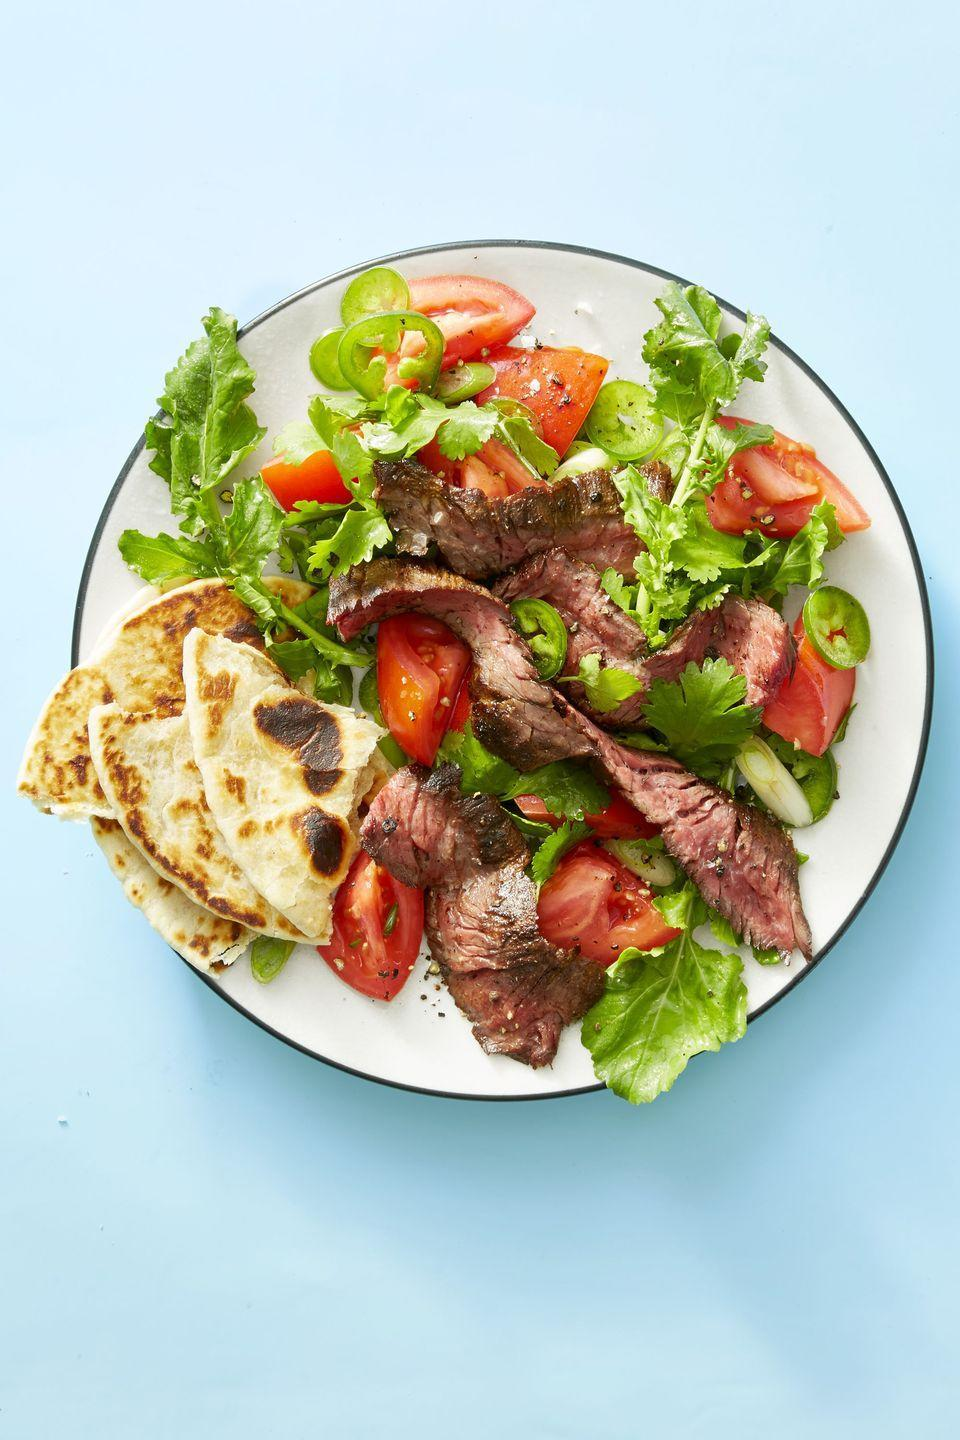 """<p>Sure, tacos are filling and delicious but they aren't always healthy. A taco salad, however, is a safer bet. </p><p><em><a href=""""https://www.goodhousekeeping.com/food-recipes/easy/a19855342/grilled-steak-tortilla-salad-recipe/"""" rel=""""nofollow noopener"""" target=""""_blank"""" data-ylk=""""slk:Get the recipe for Grilled Steak Tortilla Salad »"""" class=""""link rapid-noclick-resp"""">Get the recipe for Grilled Steak Tortilla Salad »</a></em></p><p><strong>RELATED: </strong><a href=""""https://www.goodhousekeeping.com/food-recipes/g3463/cinco-de-mayo-taco-recipes/"""" rel=""""nofollow noopener"""" target=""""_blank"""" data-ylk=""""slk:20 Easy Taco Recipes for Cinco de Mayo (or Any Day)"""" class=""""link rapid-noclick-resp"""">20 Easy Taco Recipes for Cinco de Mayo (or Any Day)</a></p>"""